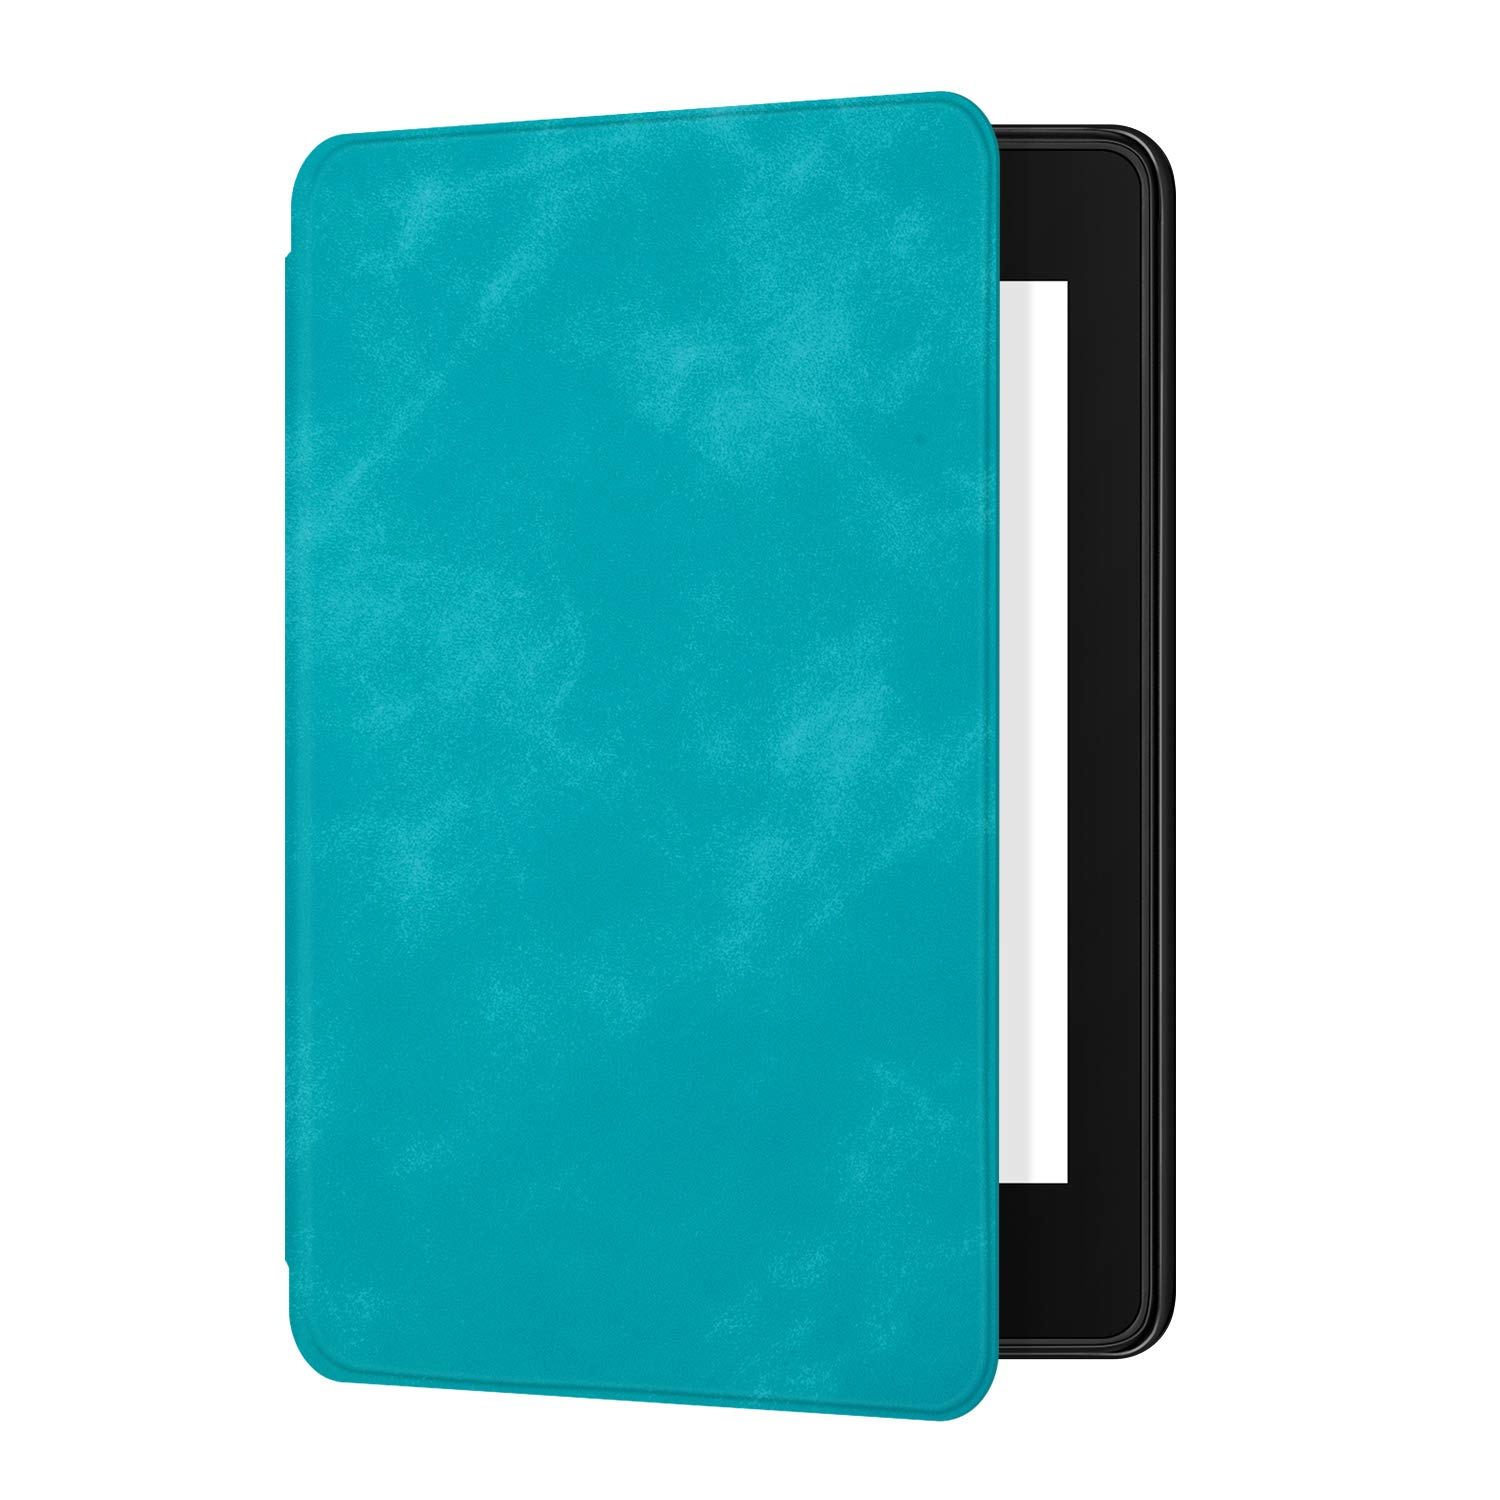 картинка Чехол-обложка Ayotu Skin Touch Feeling Case для Amazon Kindle Paperwhite 2018 (Sky Blue) от магазина 1Reader.ru